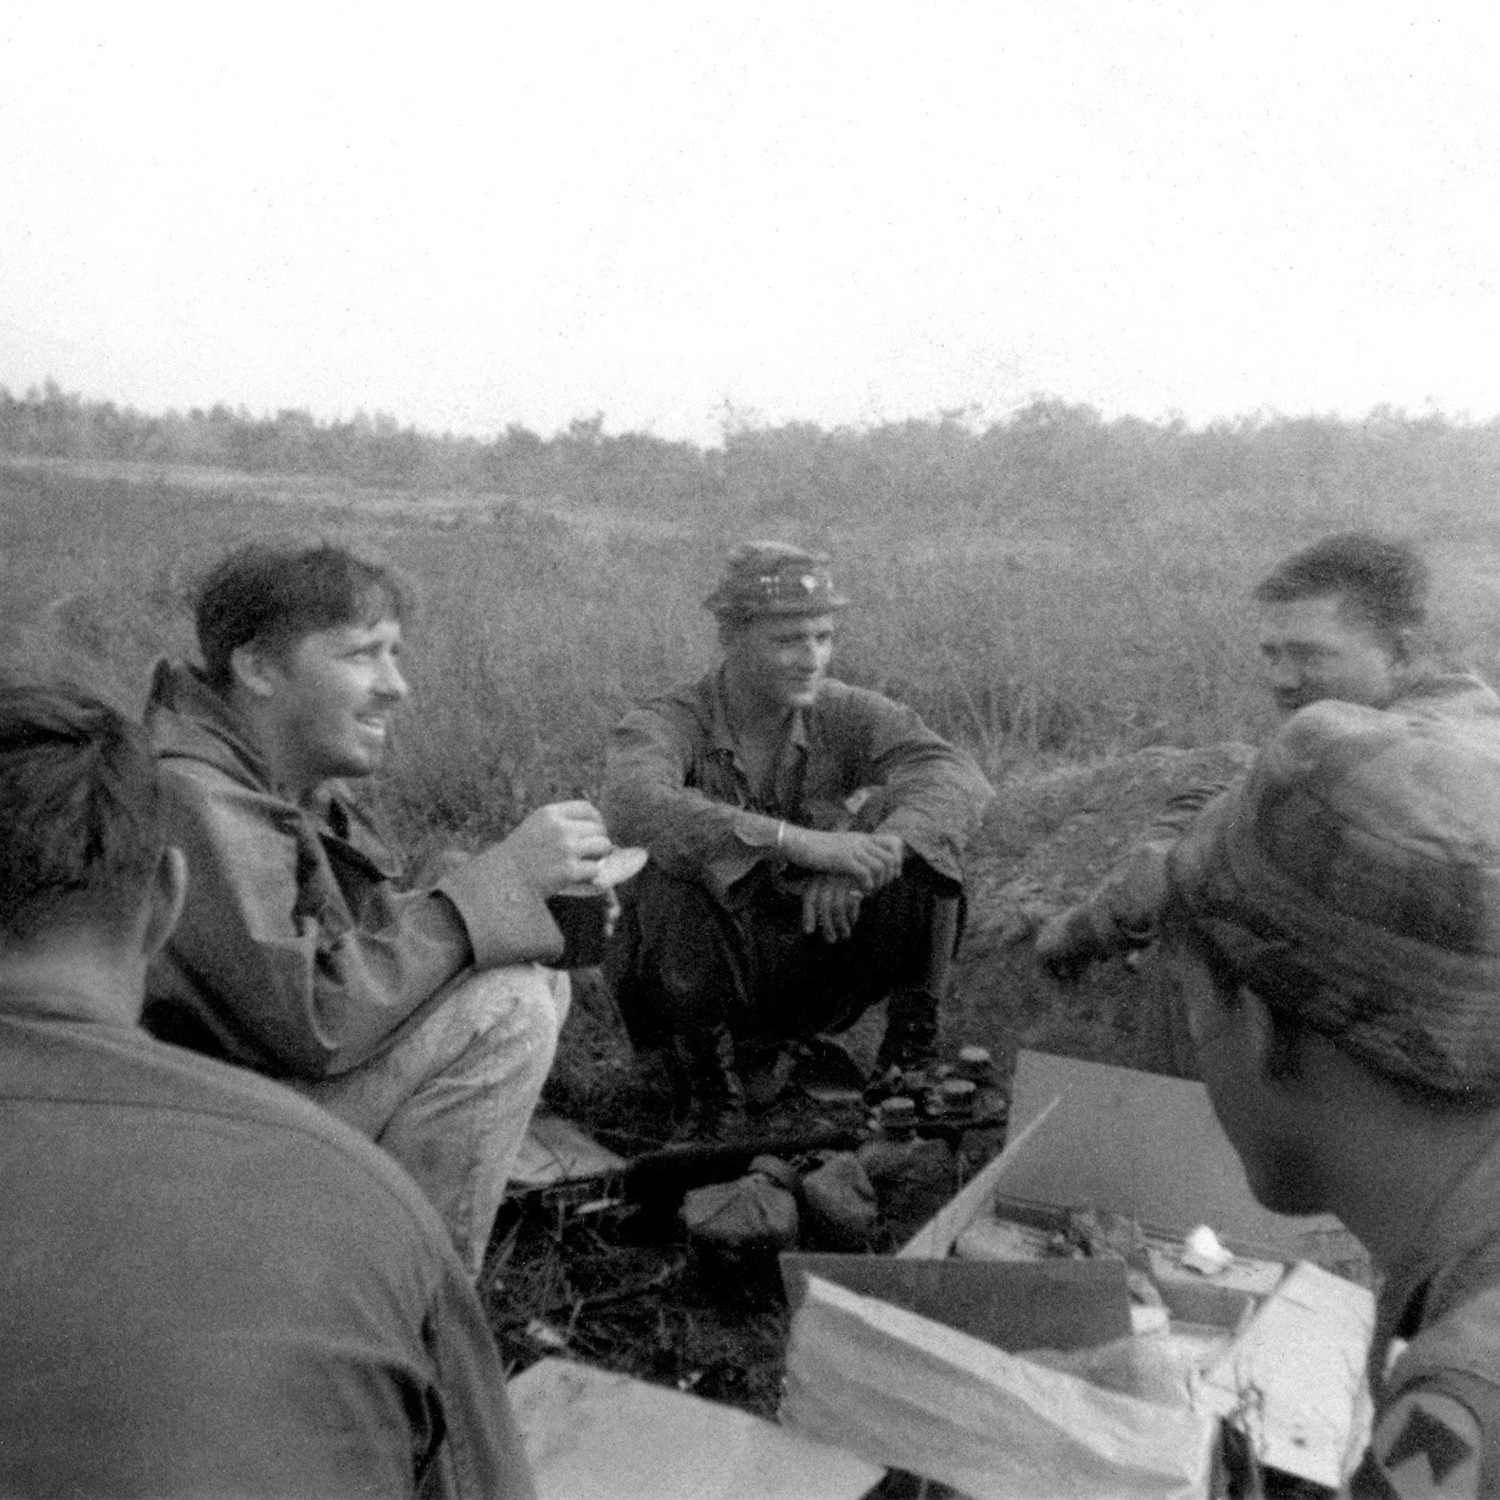 John 'Chick' Donohue (second from left) catching up with his friend Sgt. Rick Duggan (third from left) in Vietnam